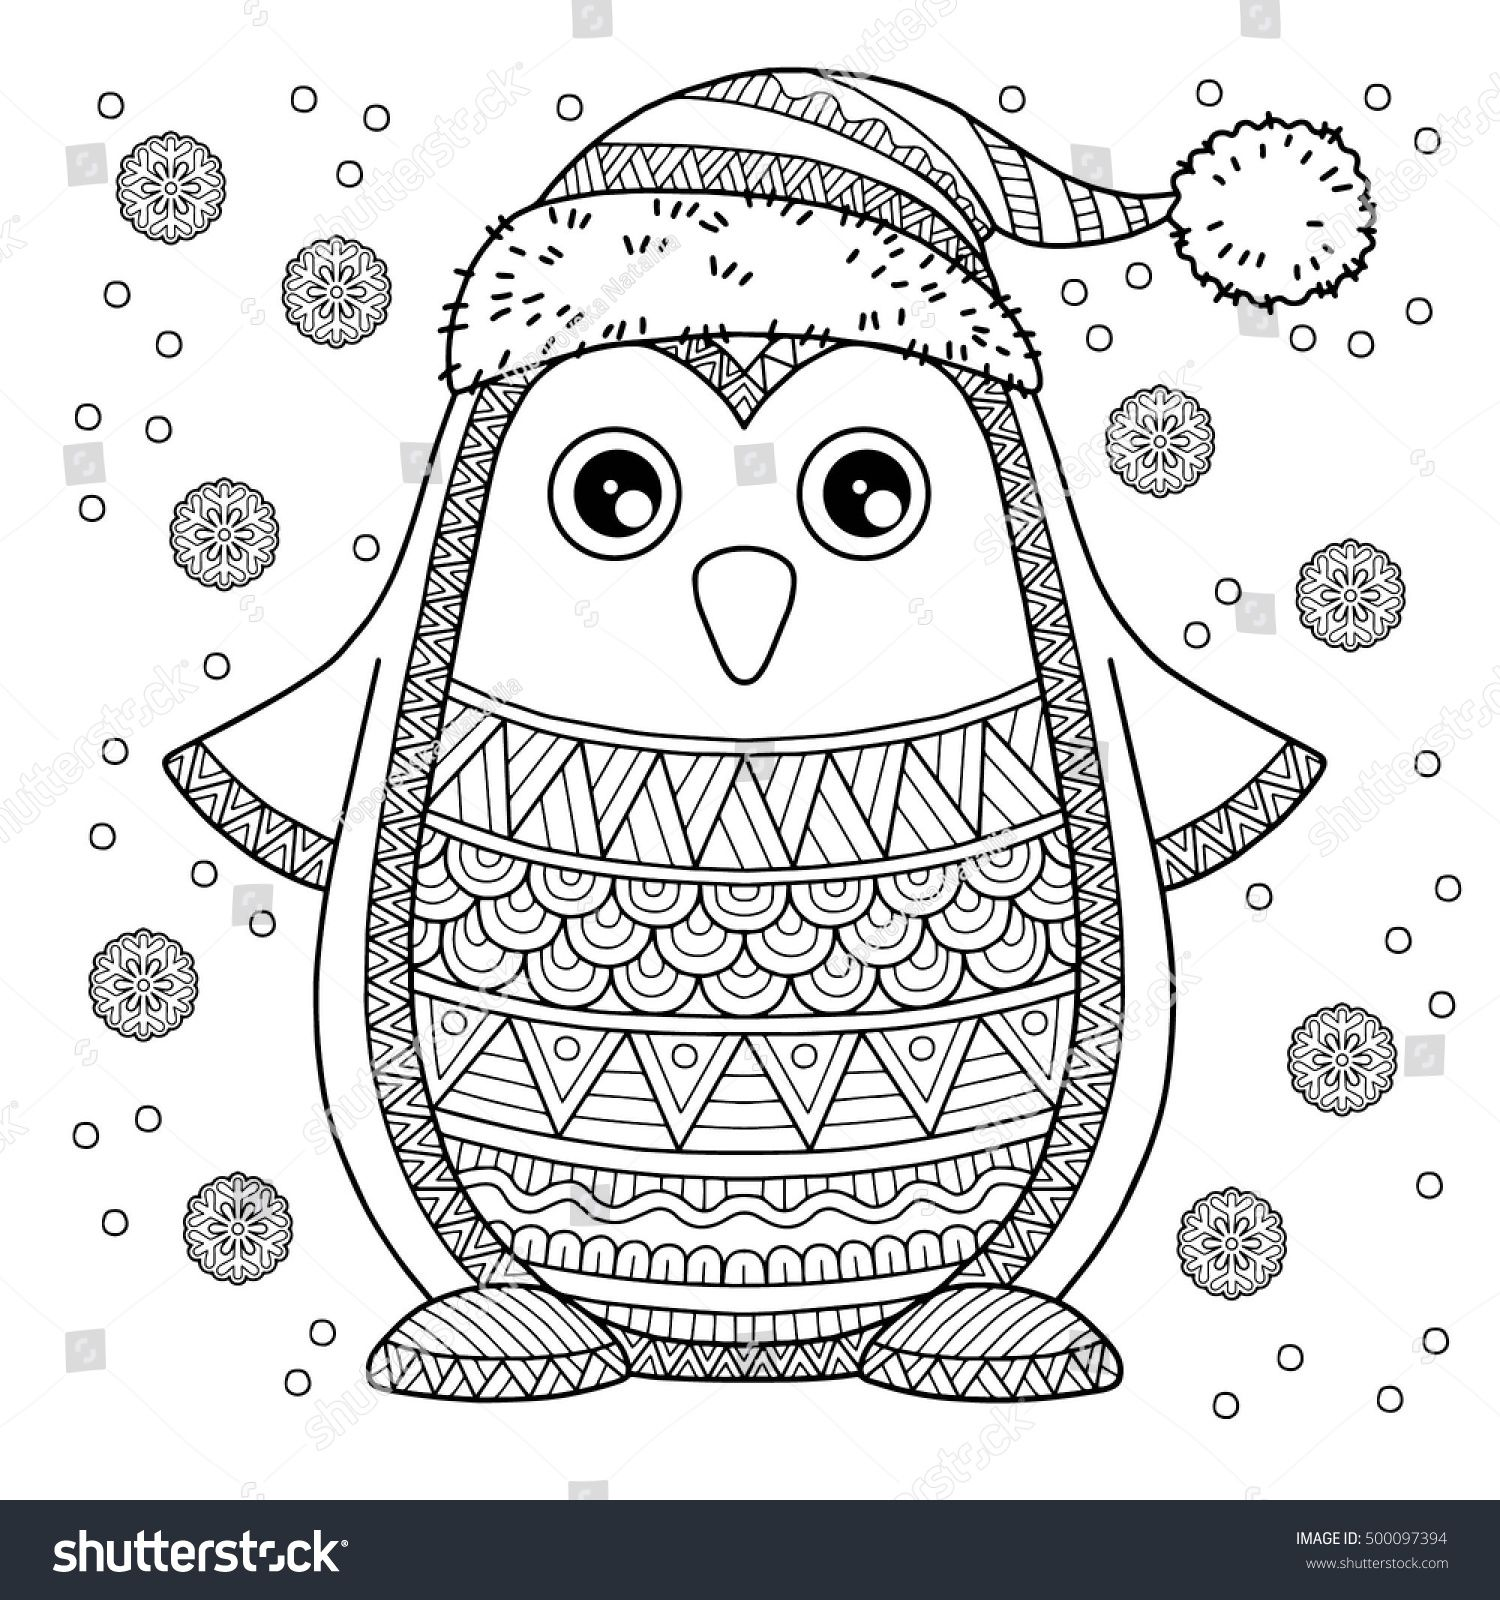 Christmas Intricate Coloring Pages With Merry Jolly Penguin The Detailed For